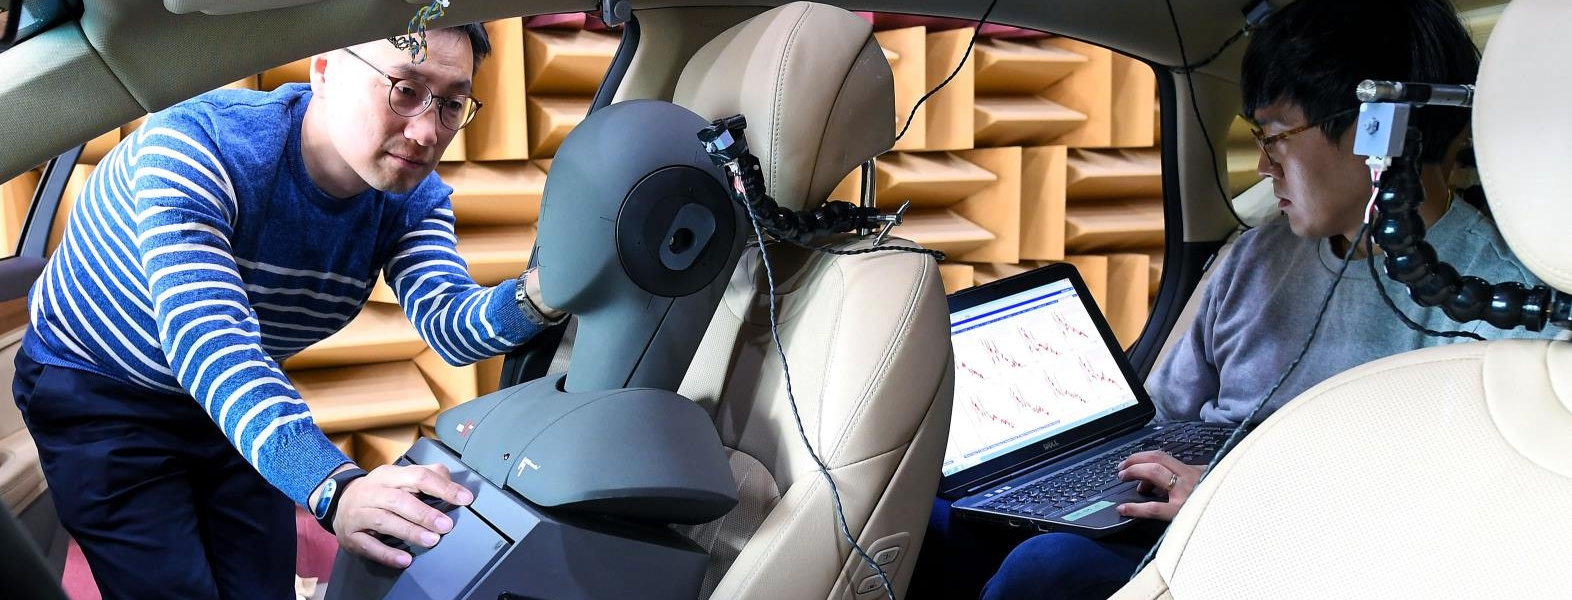 hyundai Develops Worlds First Road Noise Active Noise Control Technology.jpg